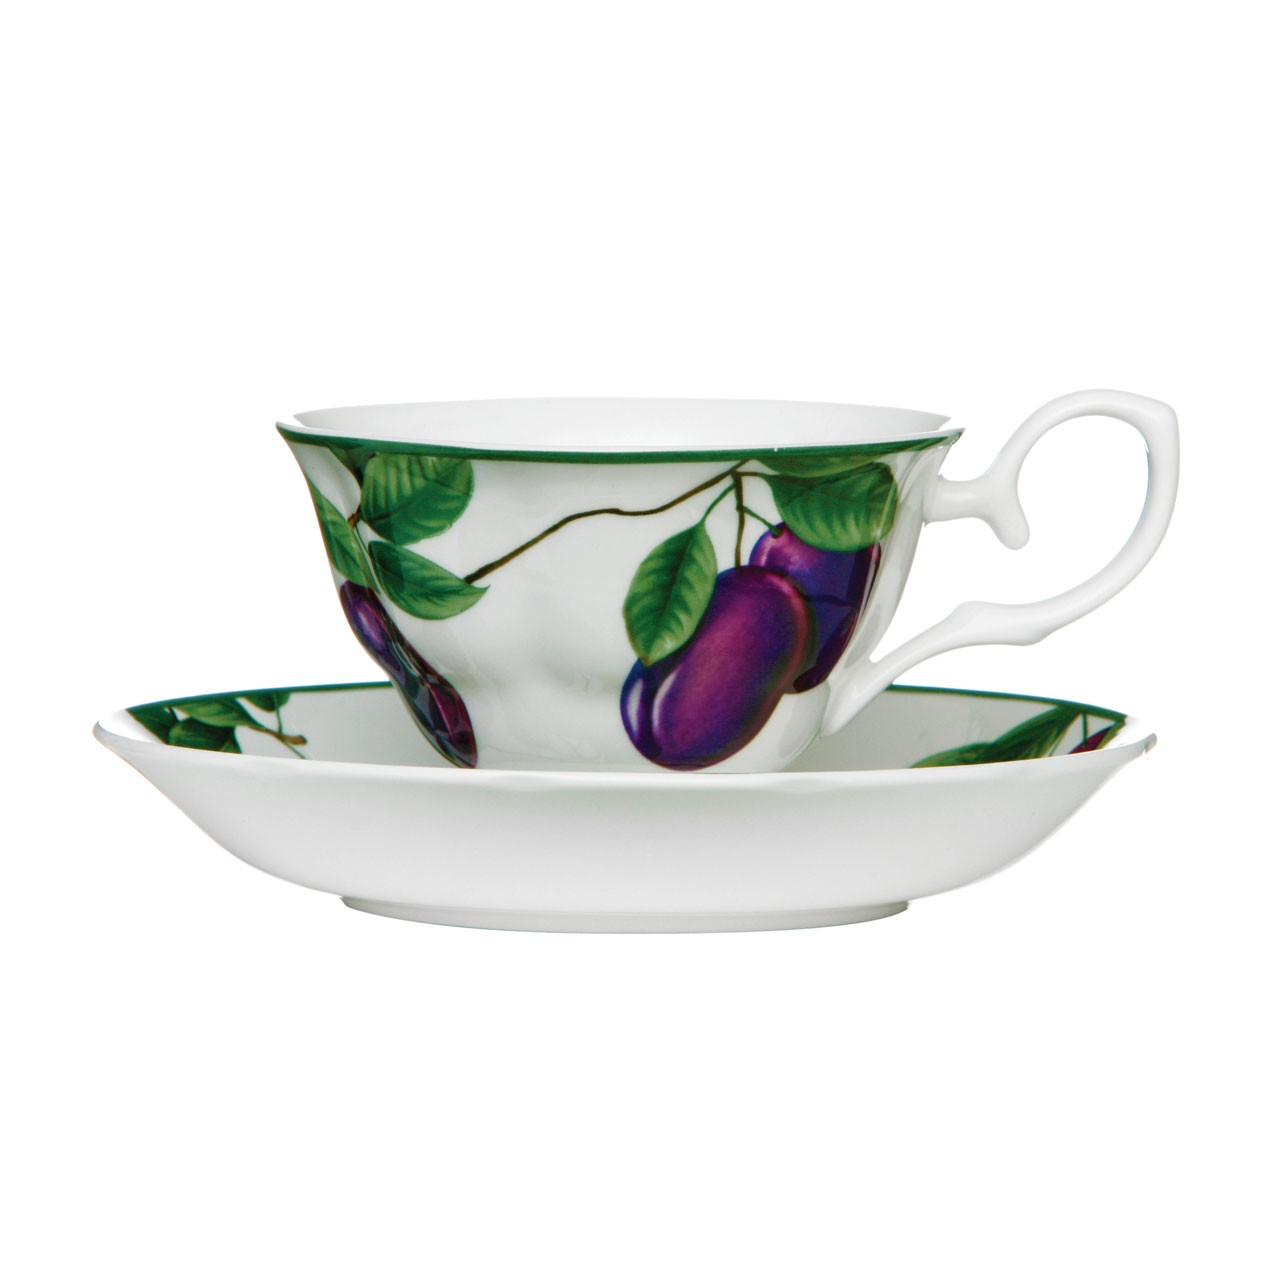 Cup And Saucer Sugar Plum Set of 2 160ml Bone China